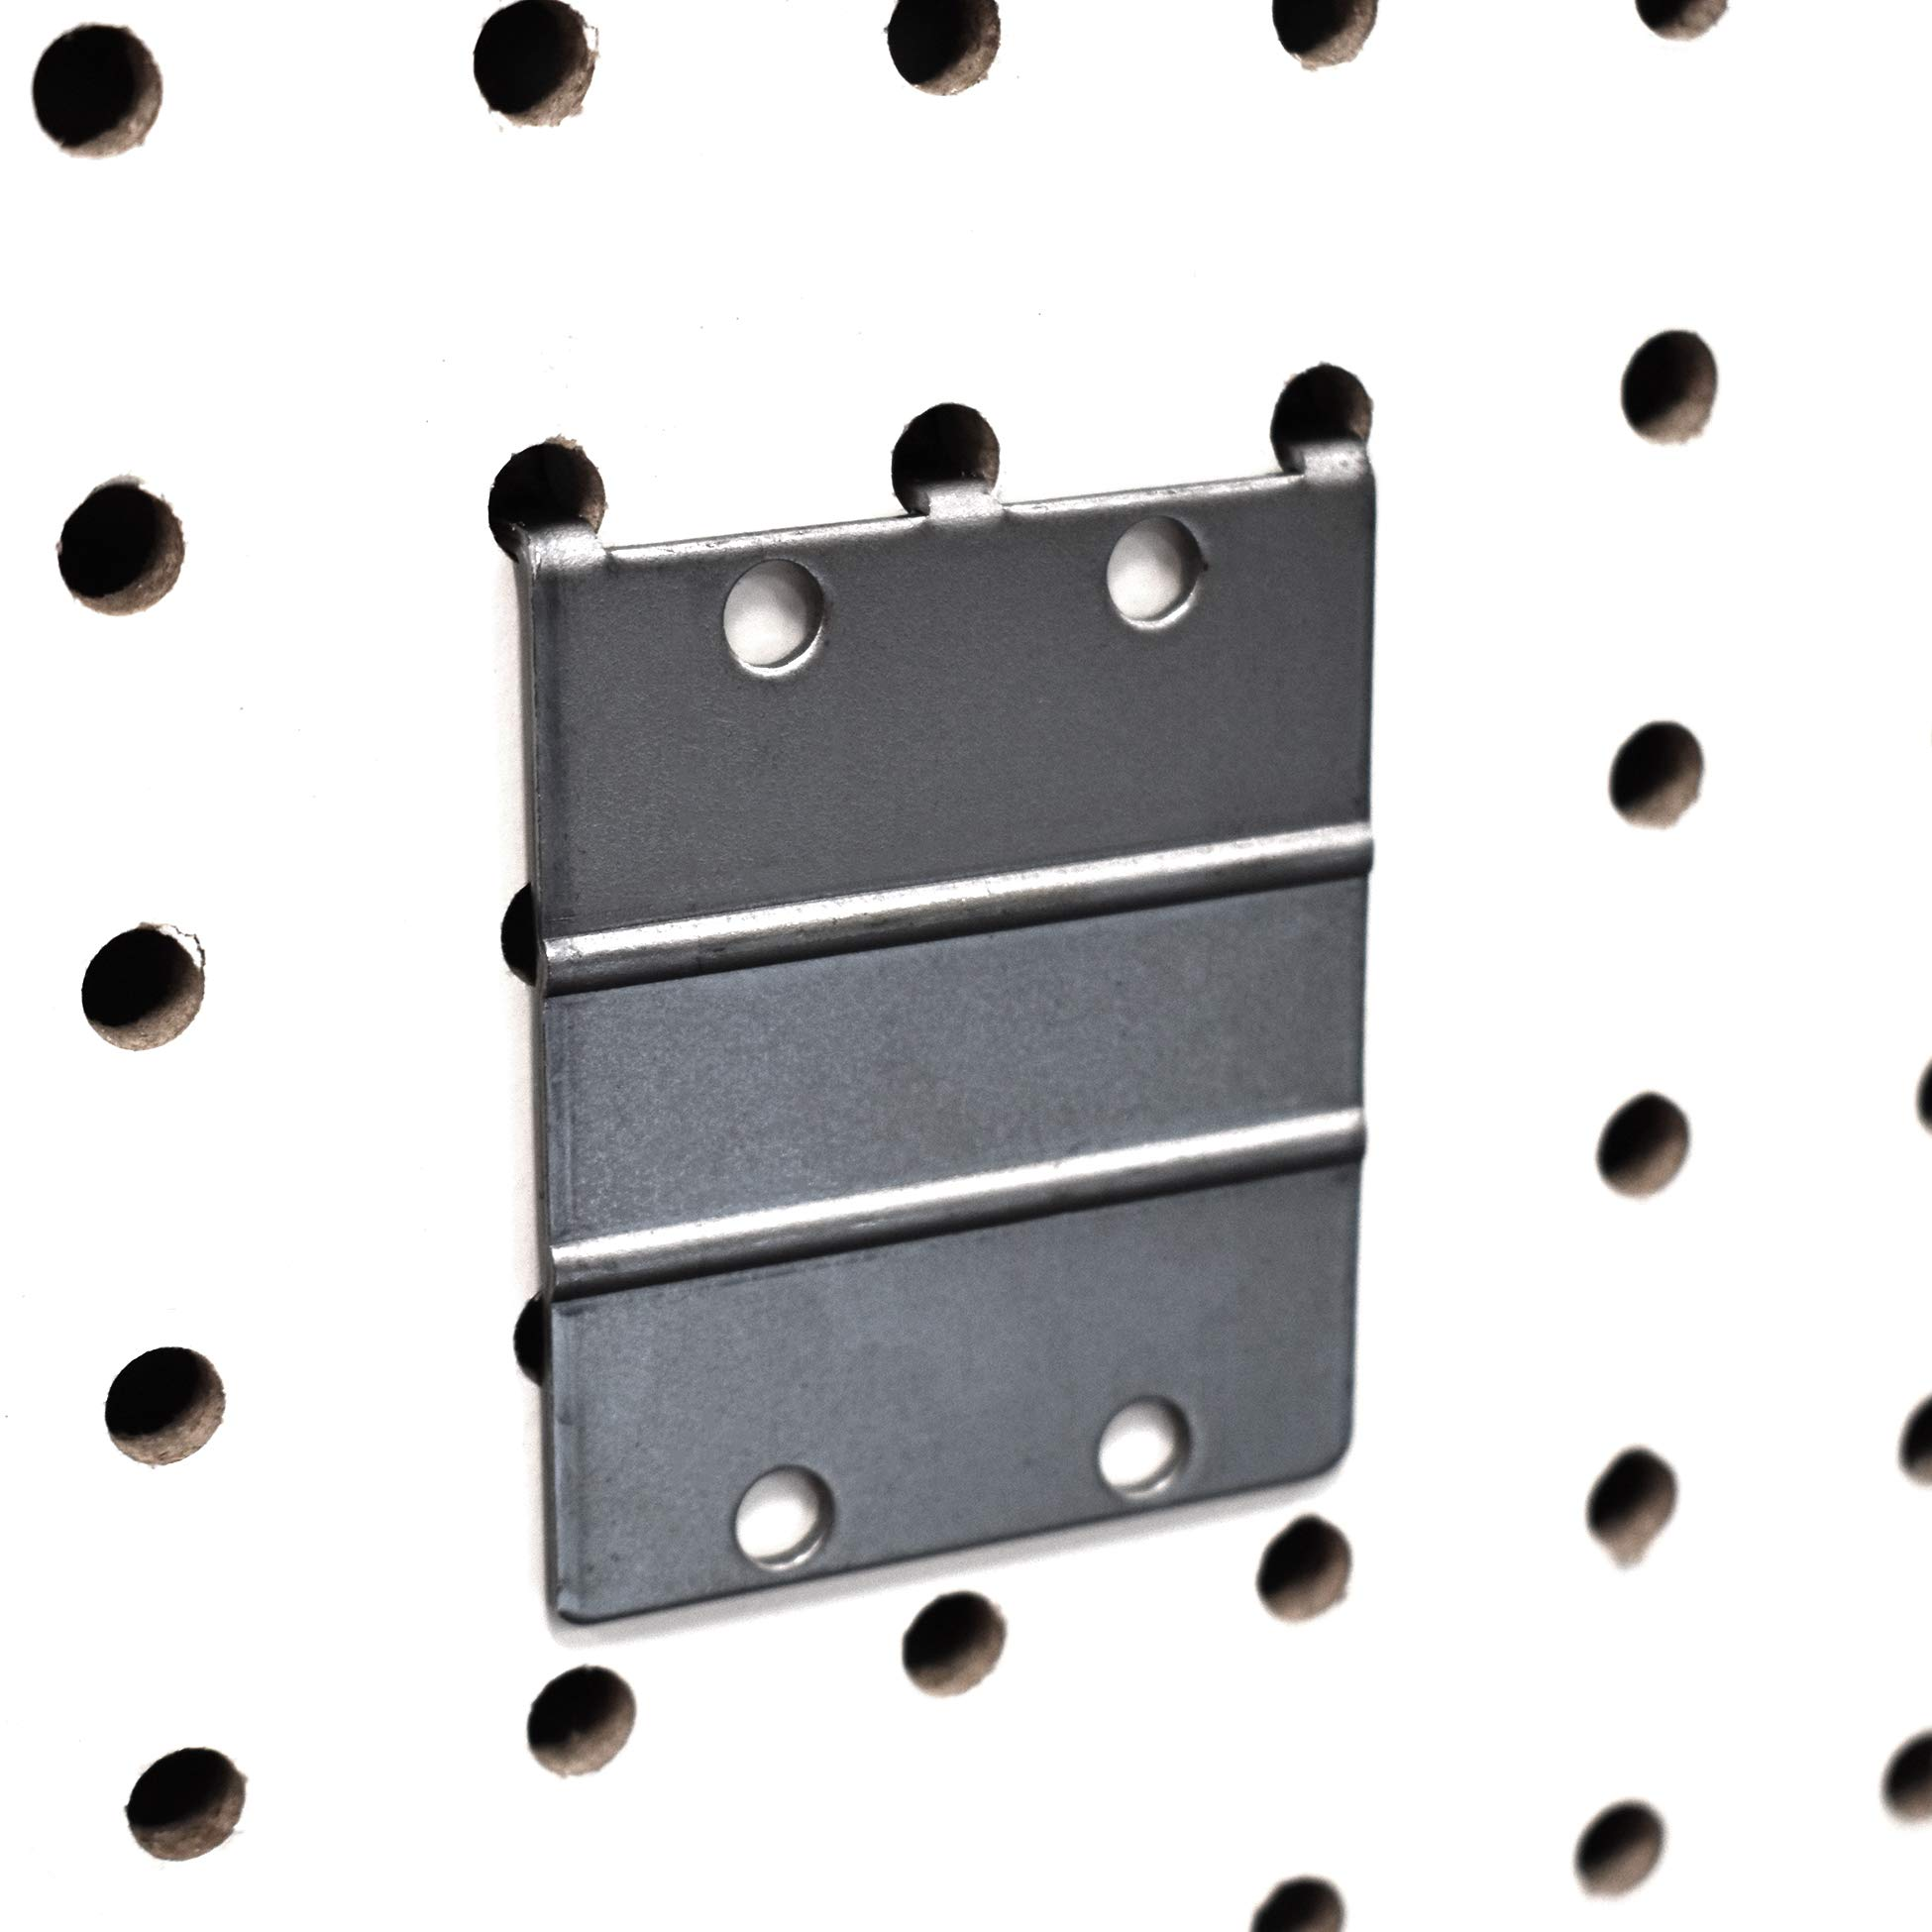 Pegboard Metal Plate Mount, Backplate Mounting Adapter to Make Items Pegboard Compatible, 5 Pack